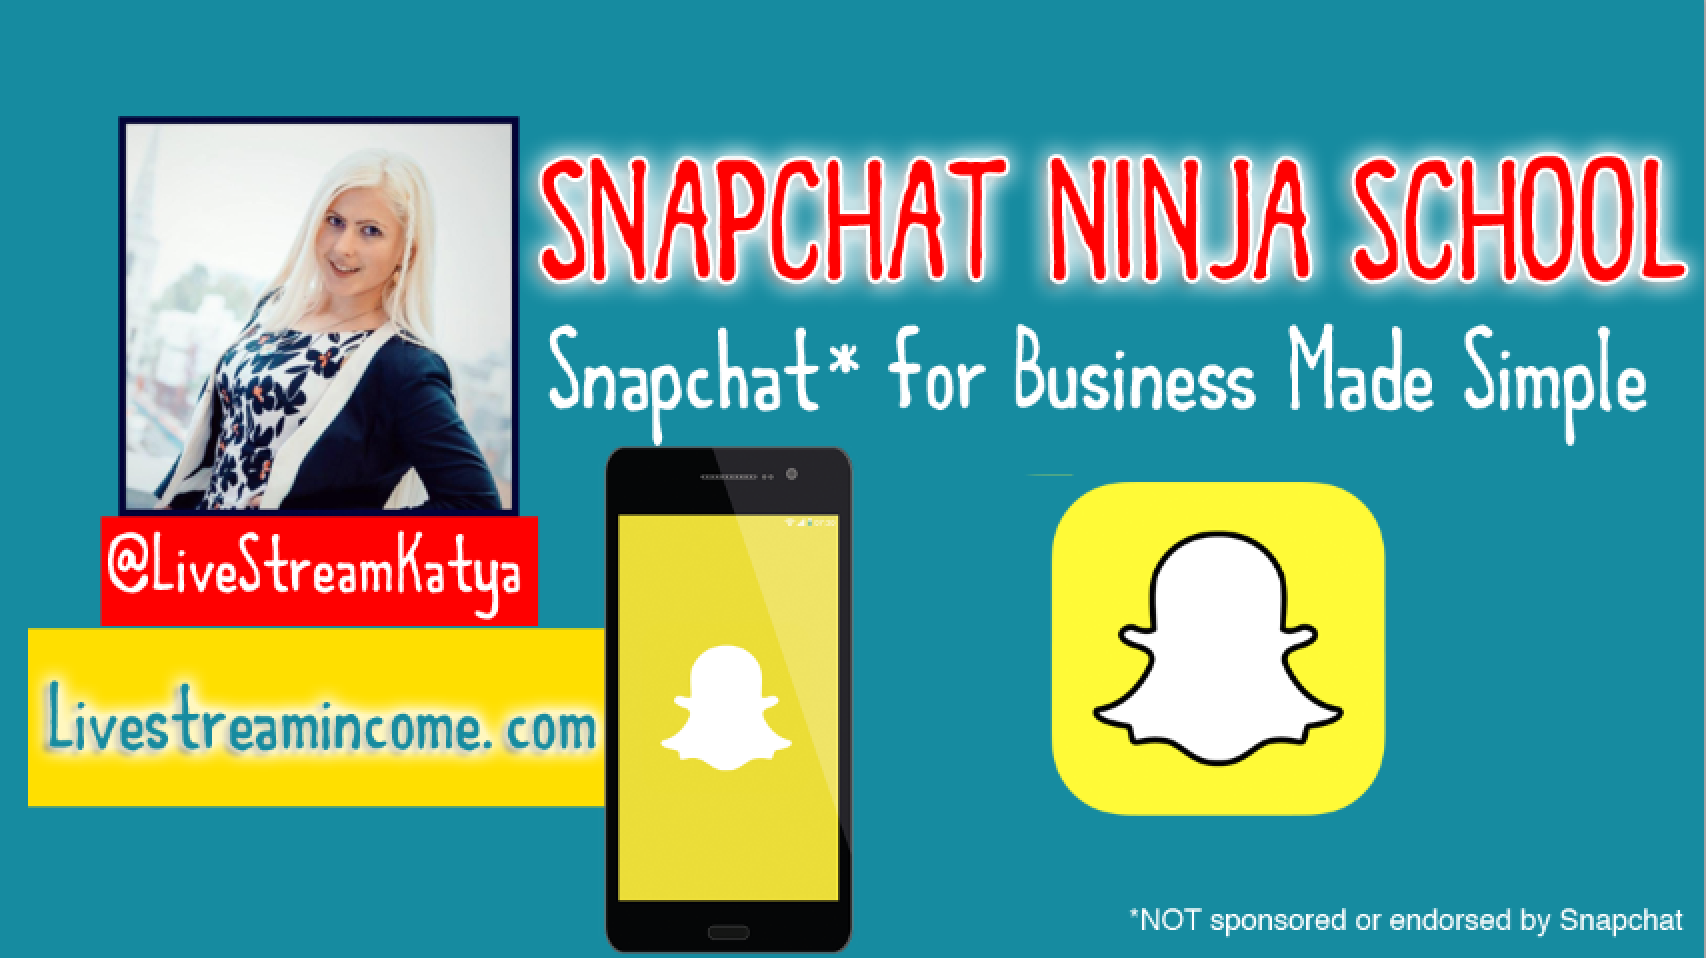 Snapchat Ninja School - Snapchat Made Simple for Business